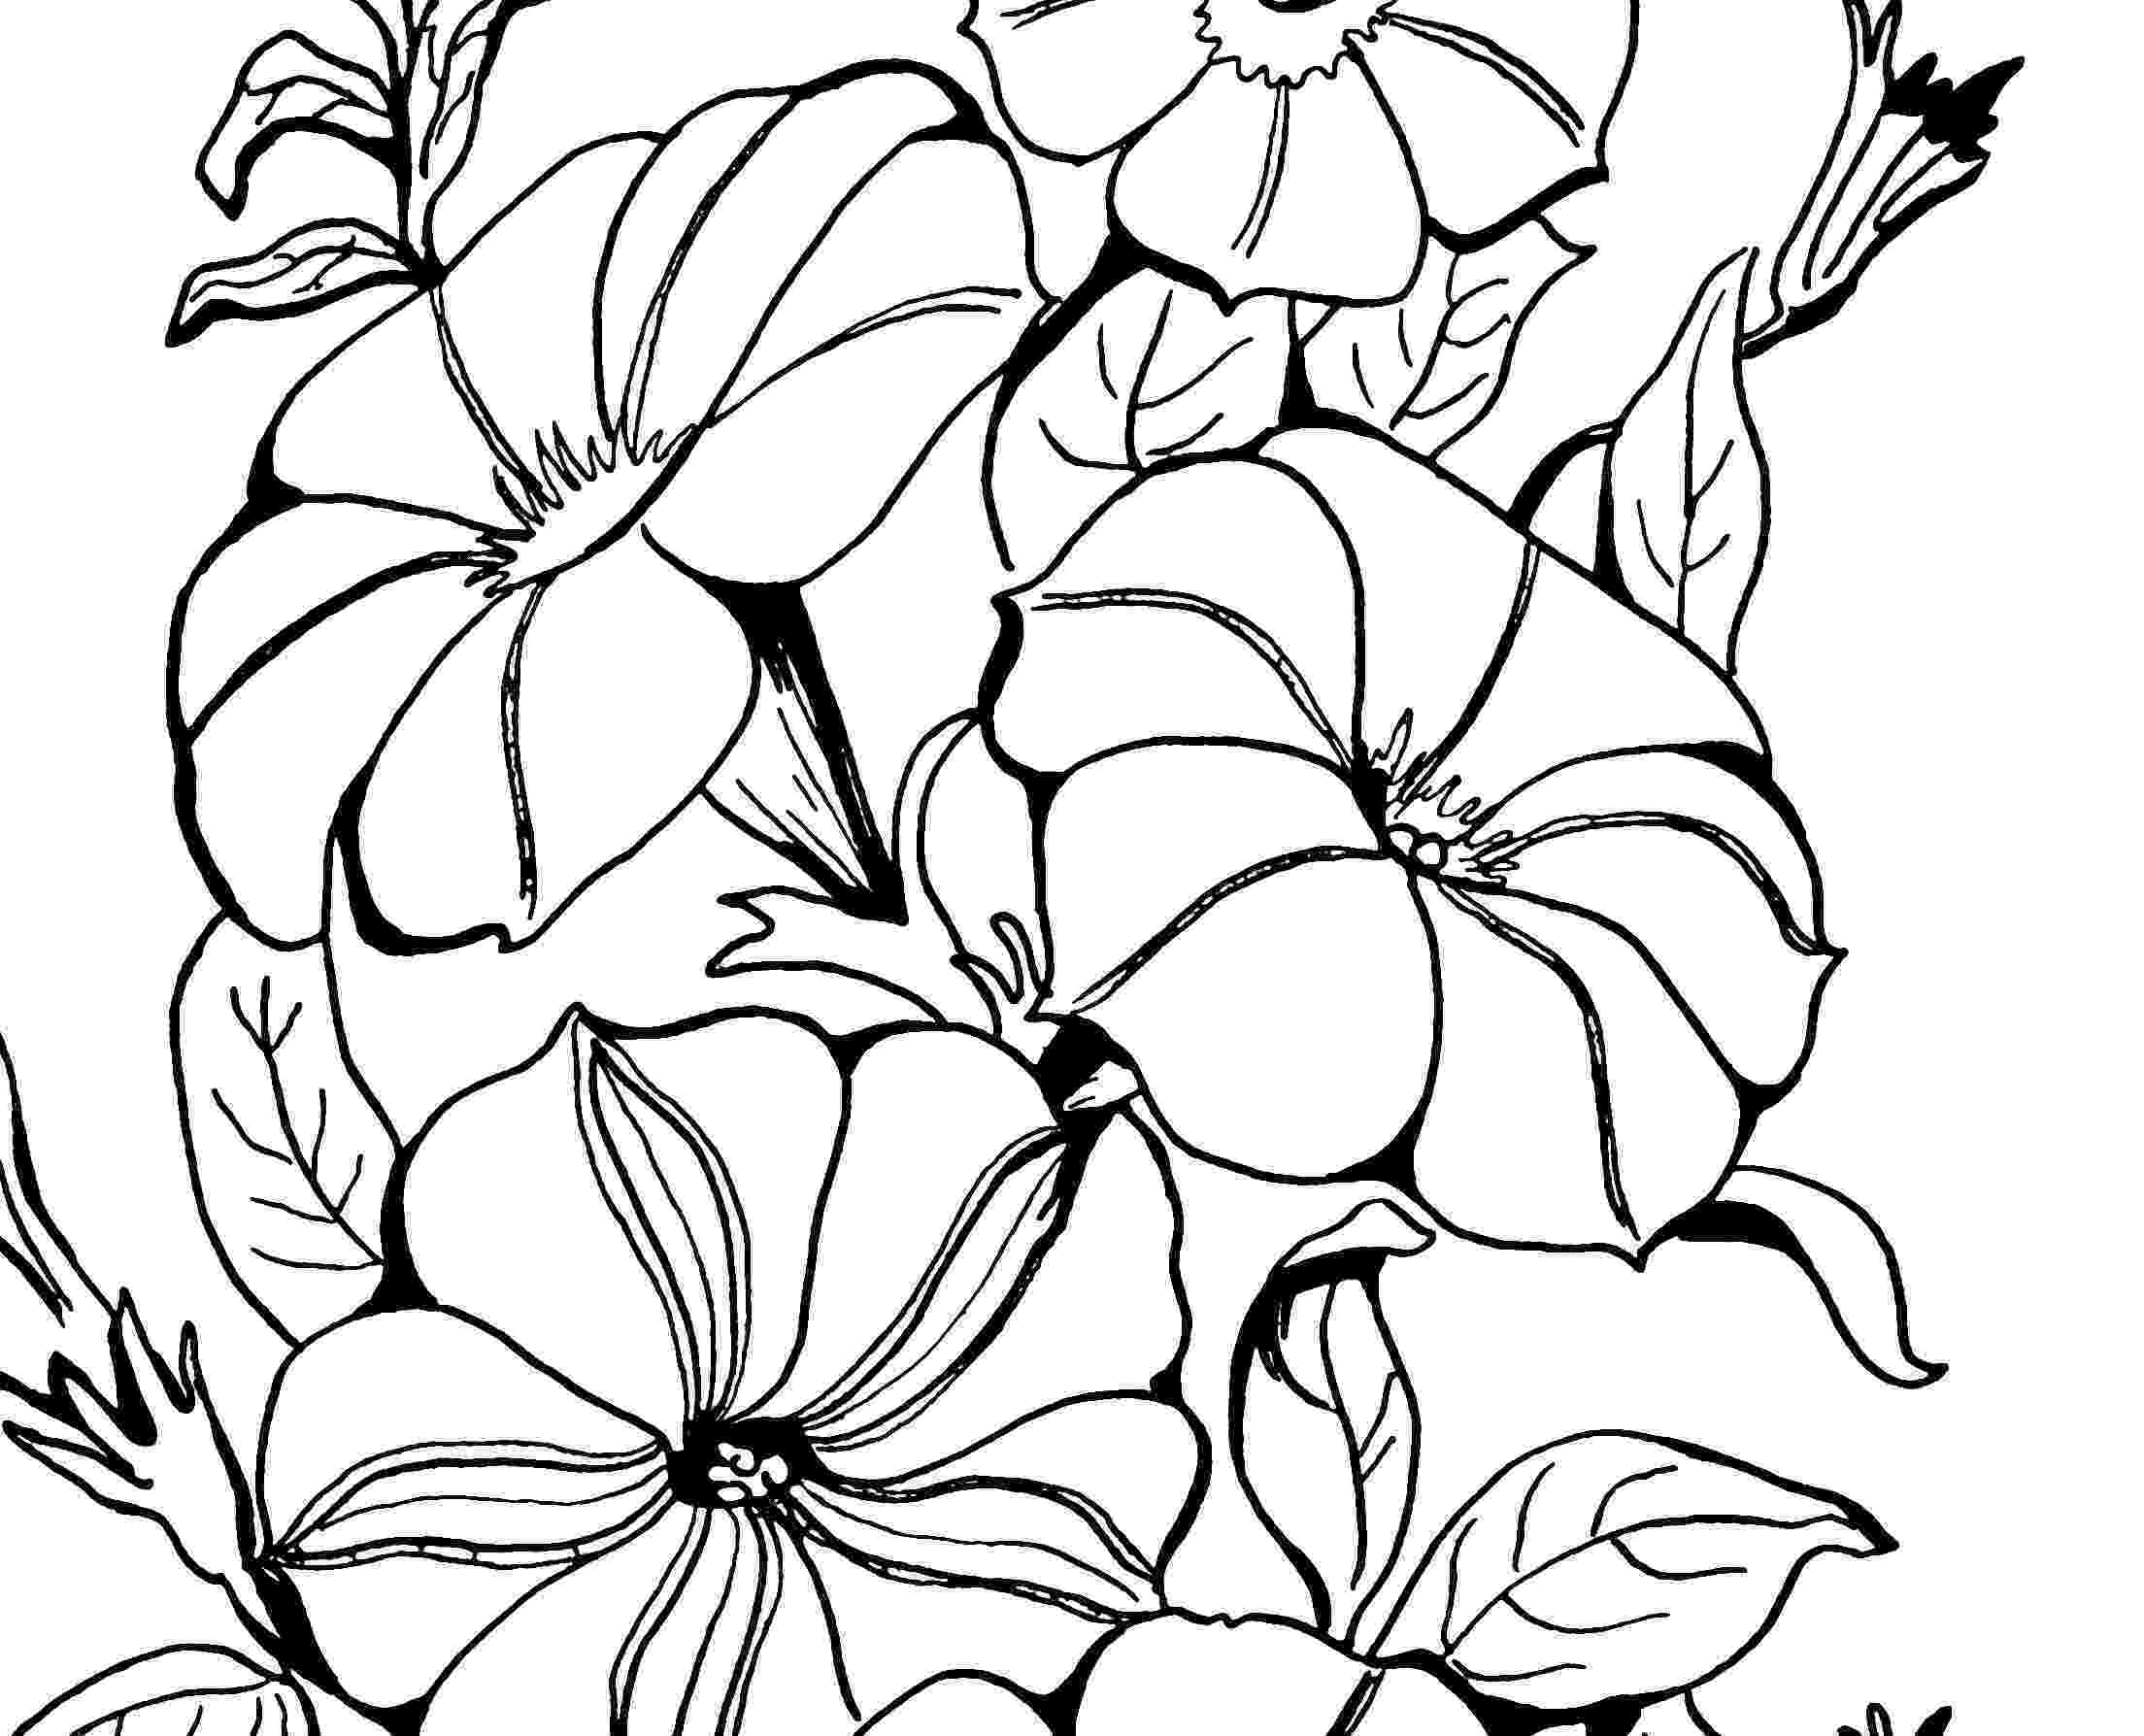 black and white coloring pages for adults adult coloring page petunias the graphics fairy pages white black adults and for coloring